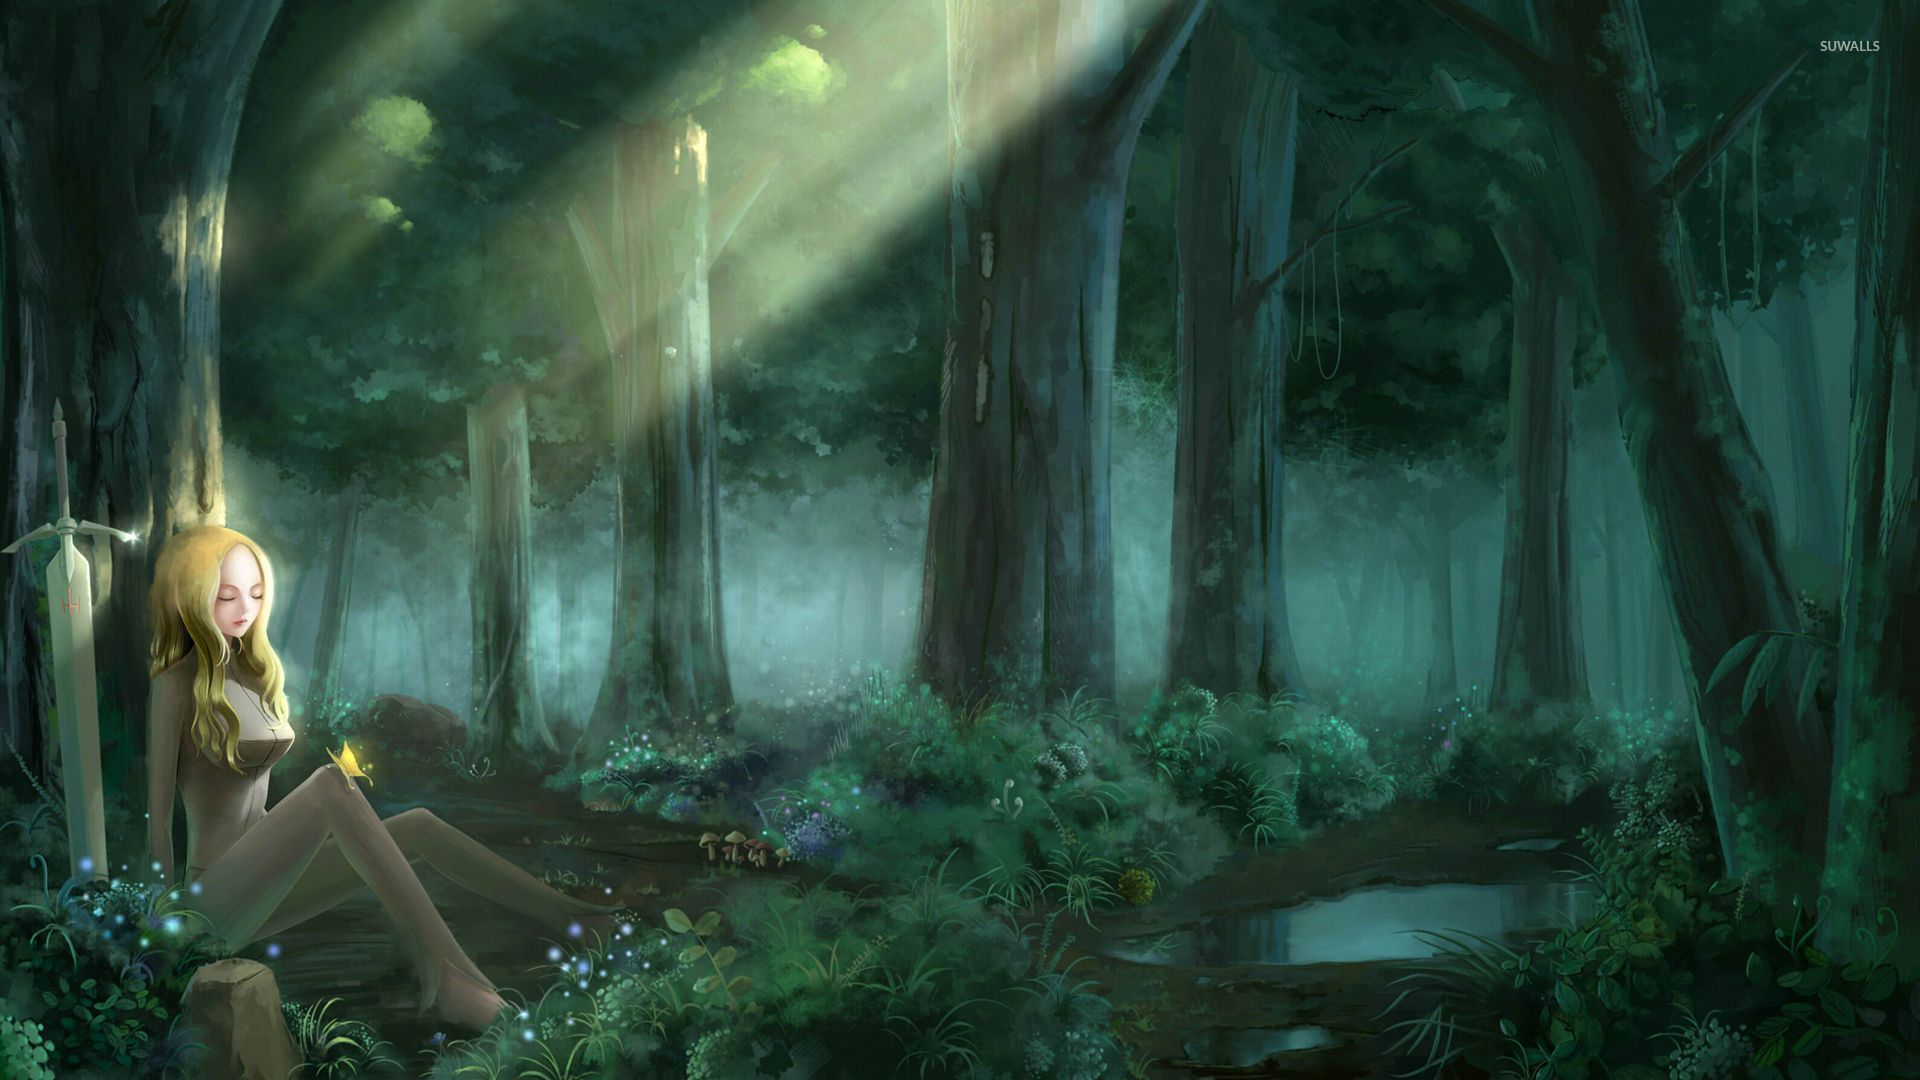 Anime forest wallpapers top free anime forest - Anime forest background ...